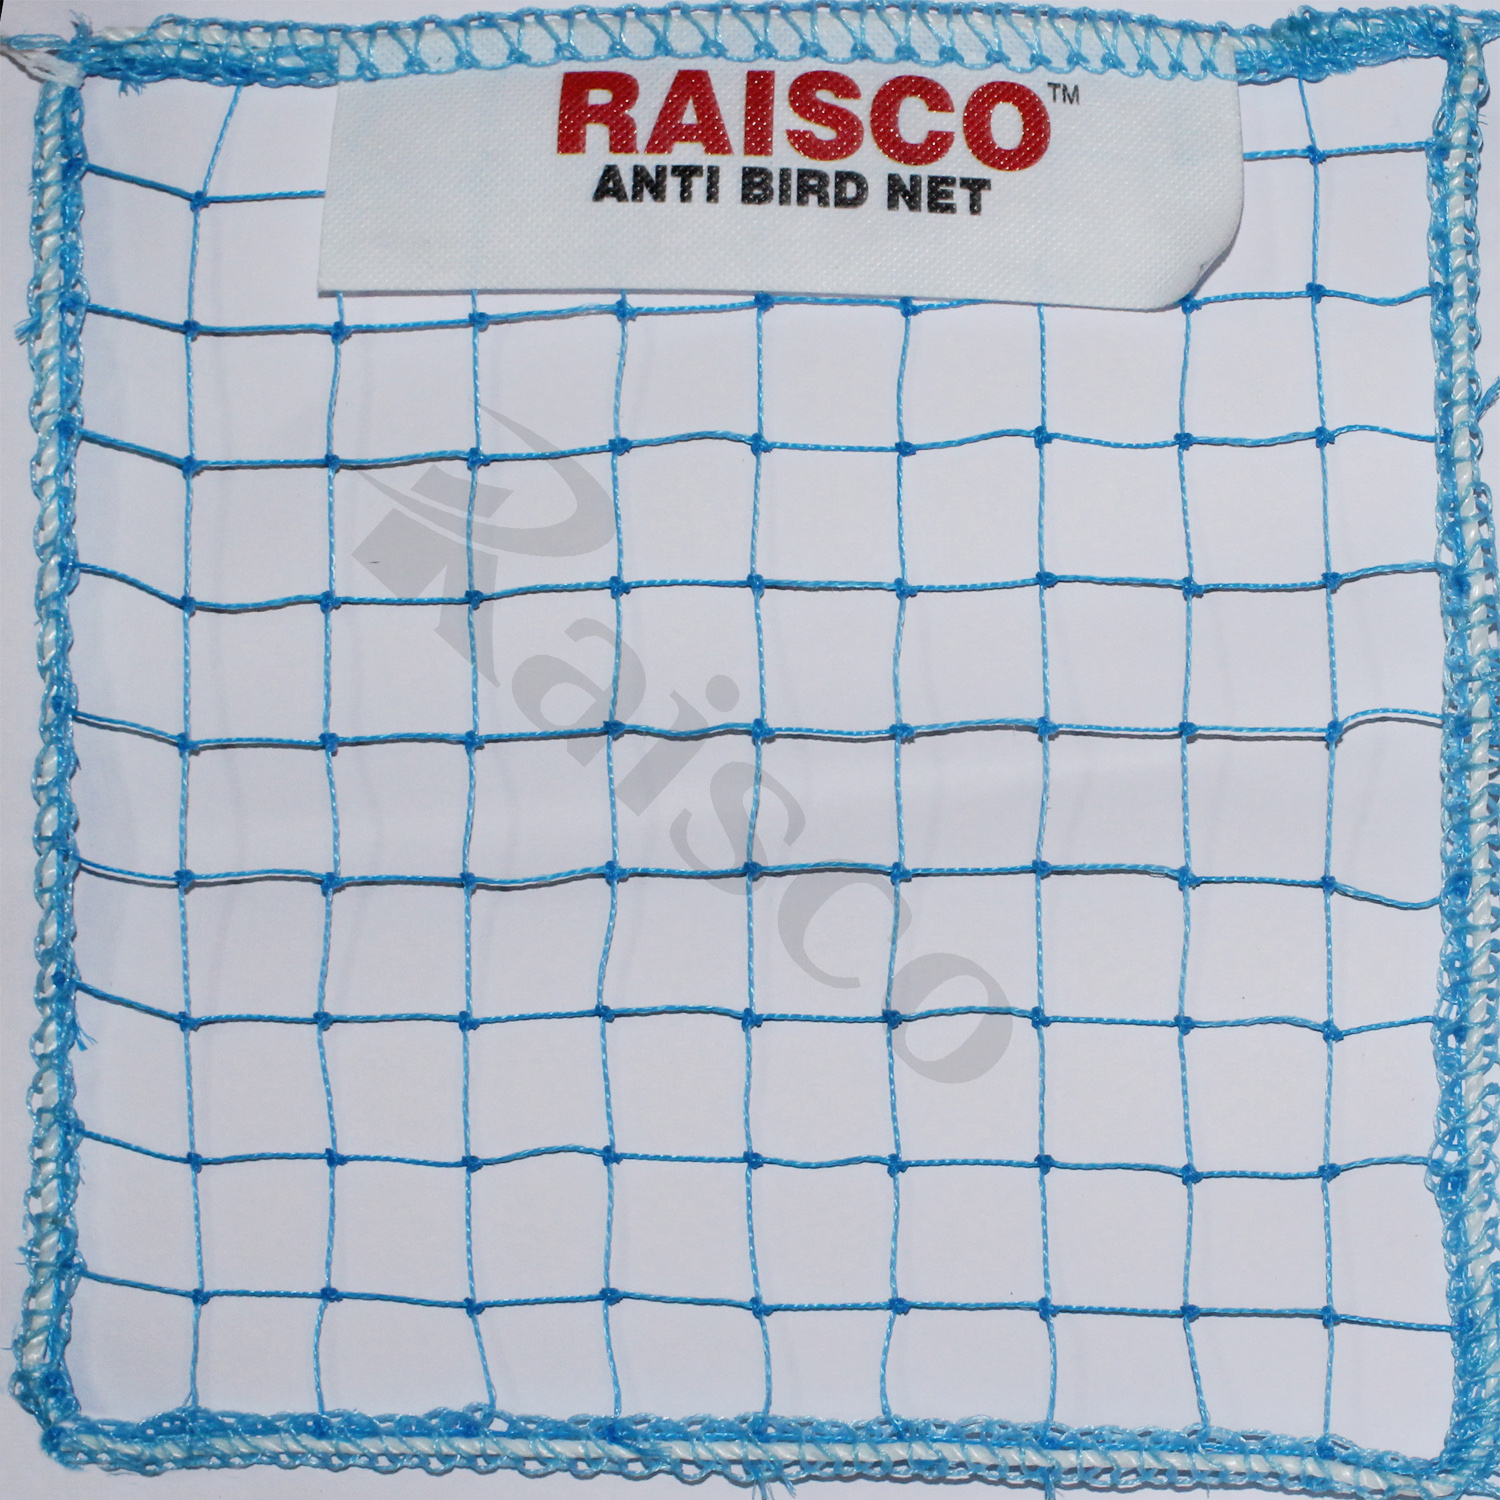 Raisco 10x15 Ft Anti-Bird Net (150 Sq Ft) Nylon Bird Net With 20Pcs Plastic Cable Clips & Tying Ropes